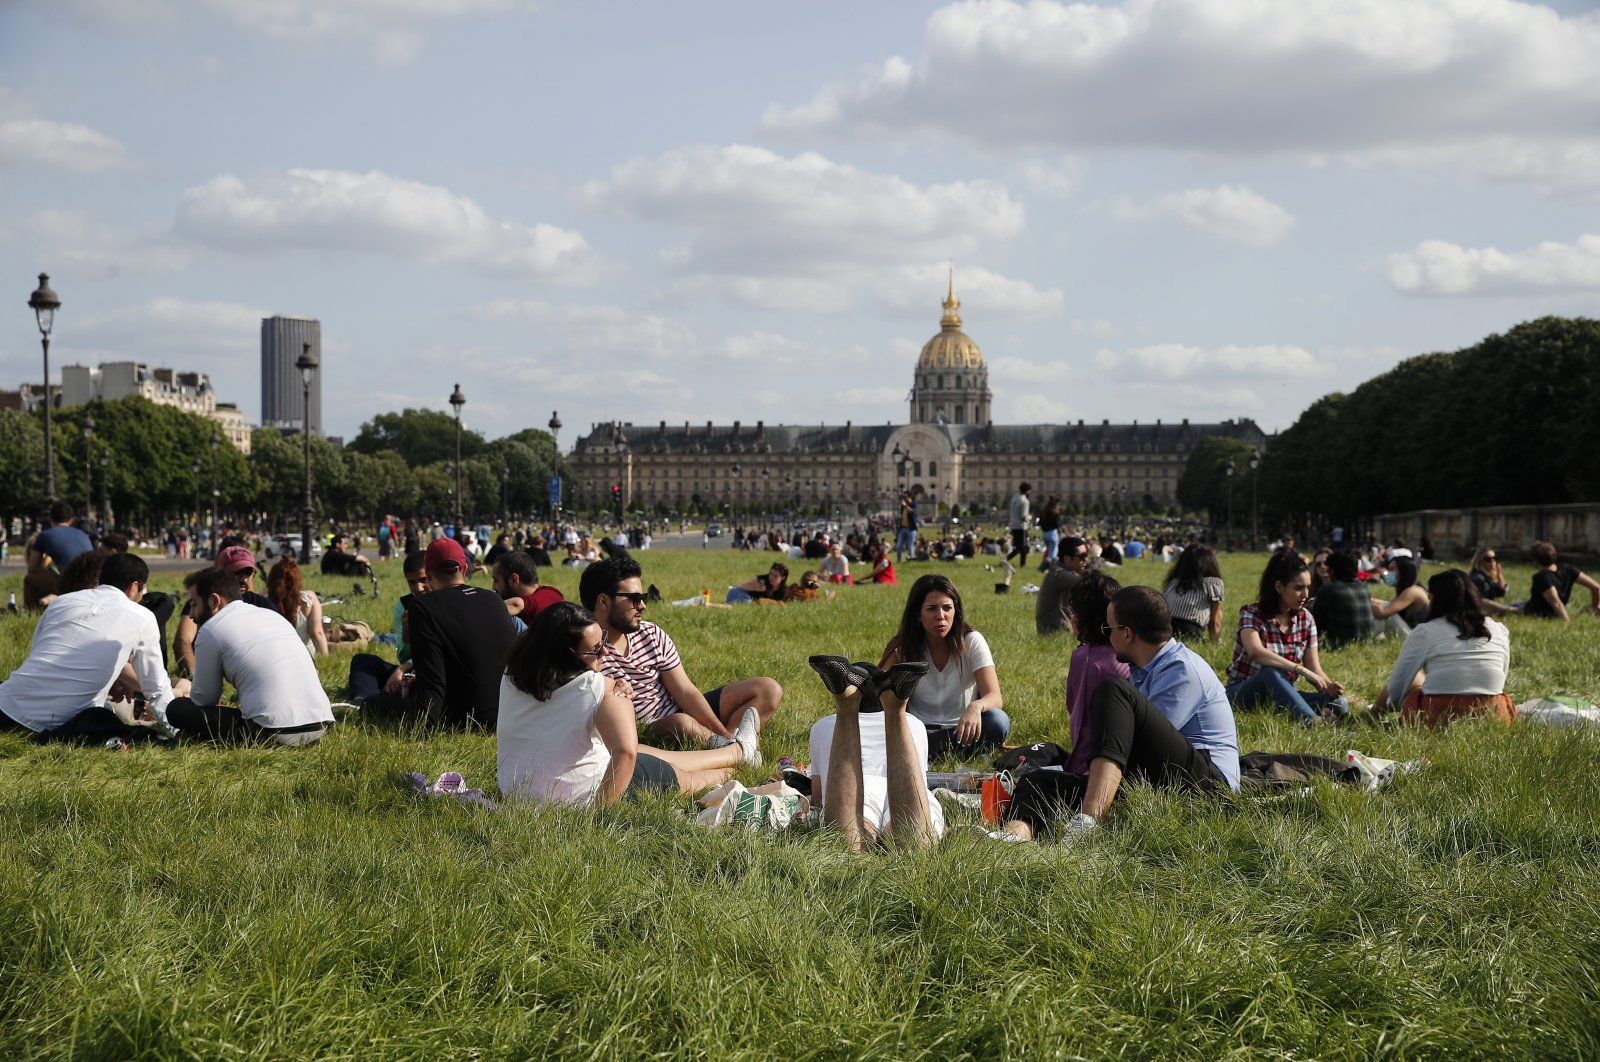 Parisians relax in the non-mowed lawn next to the Invalides Museum in Paris, Sunday, May 24, 2020 as France gradually lifts its COVID-19 lockdown. (AP Photo)